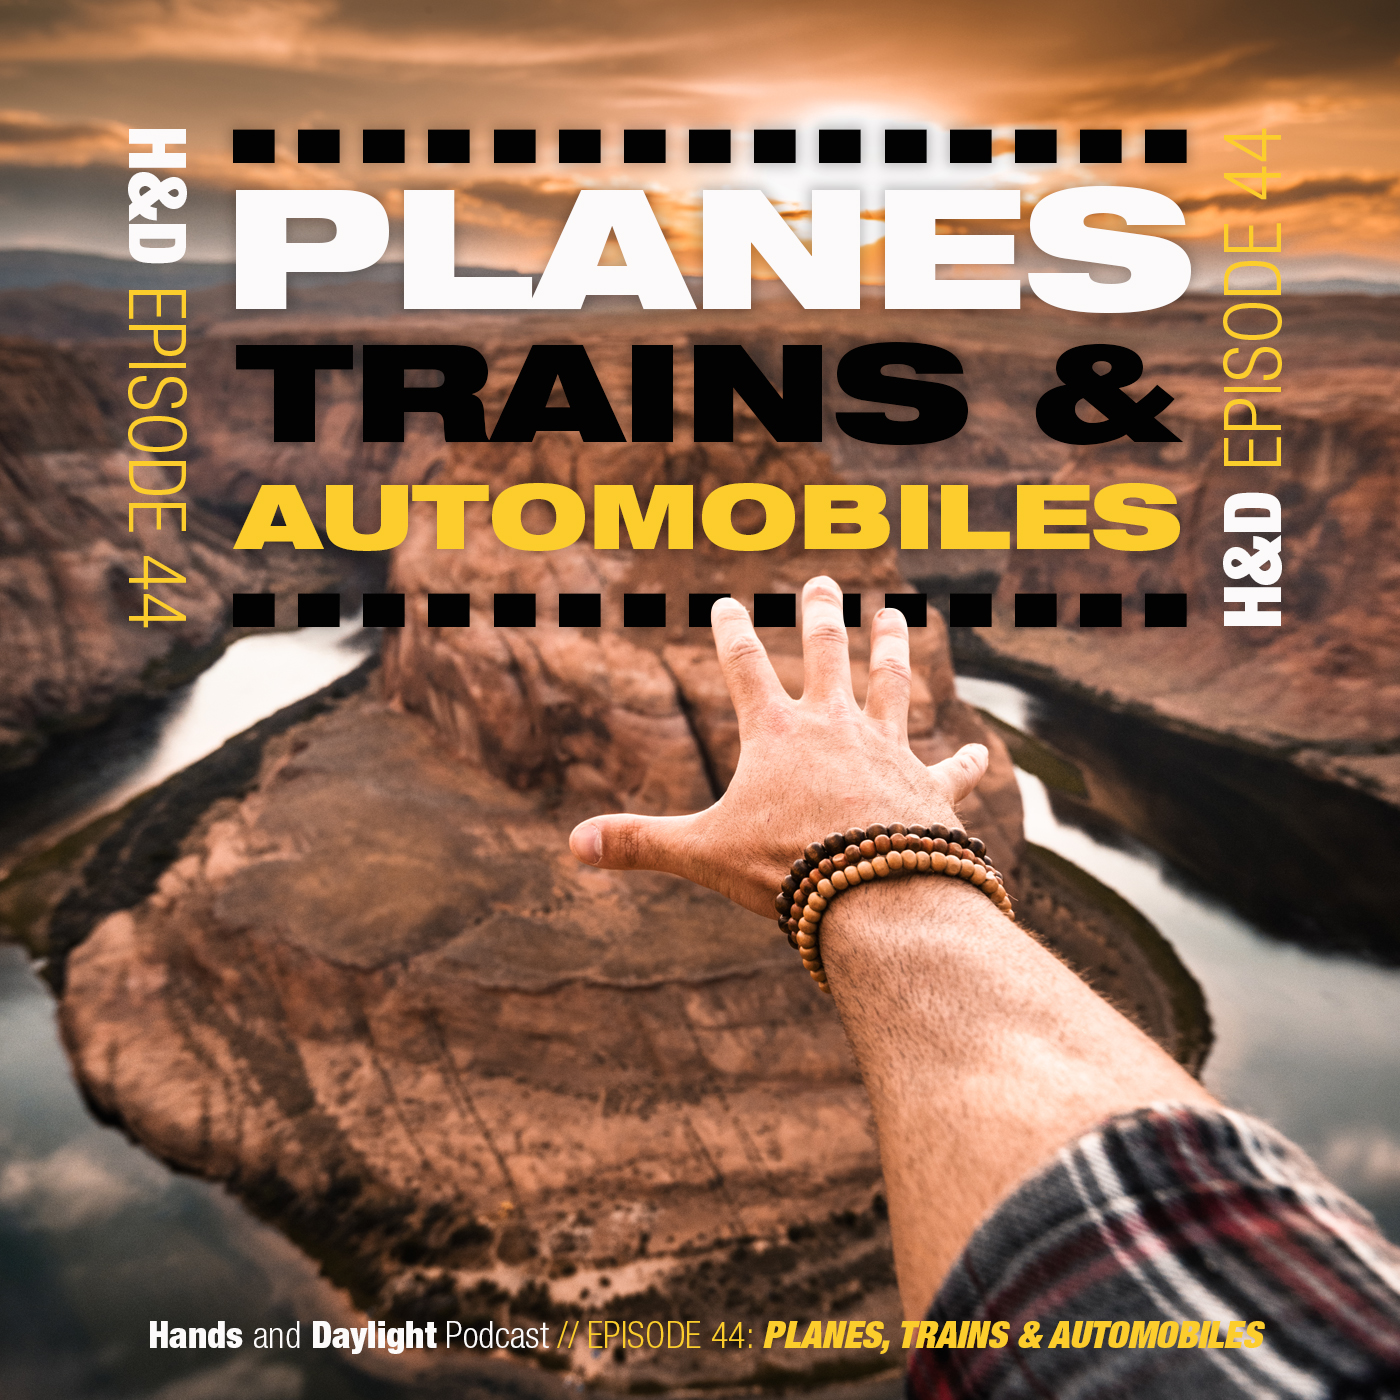 E44: PLANES, TRAINS & AUTOMOBILES